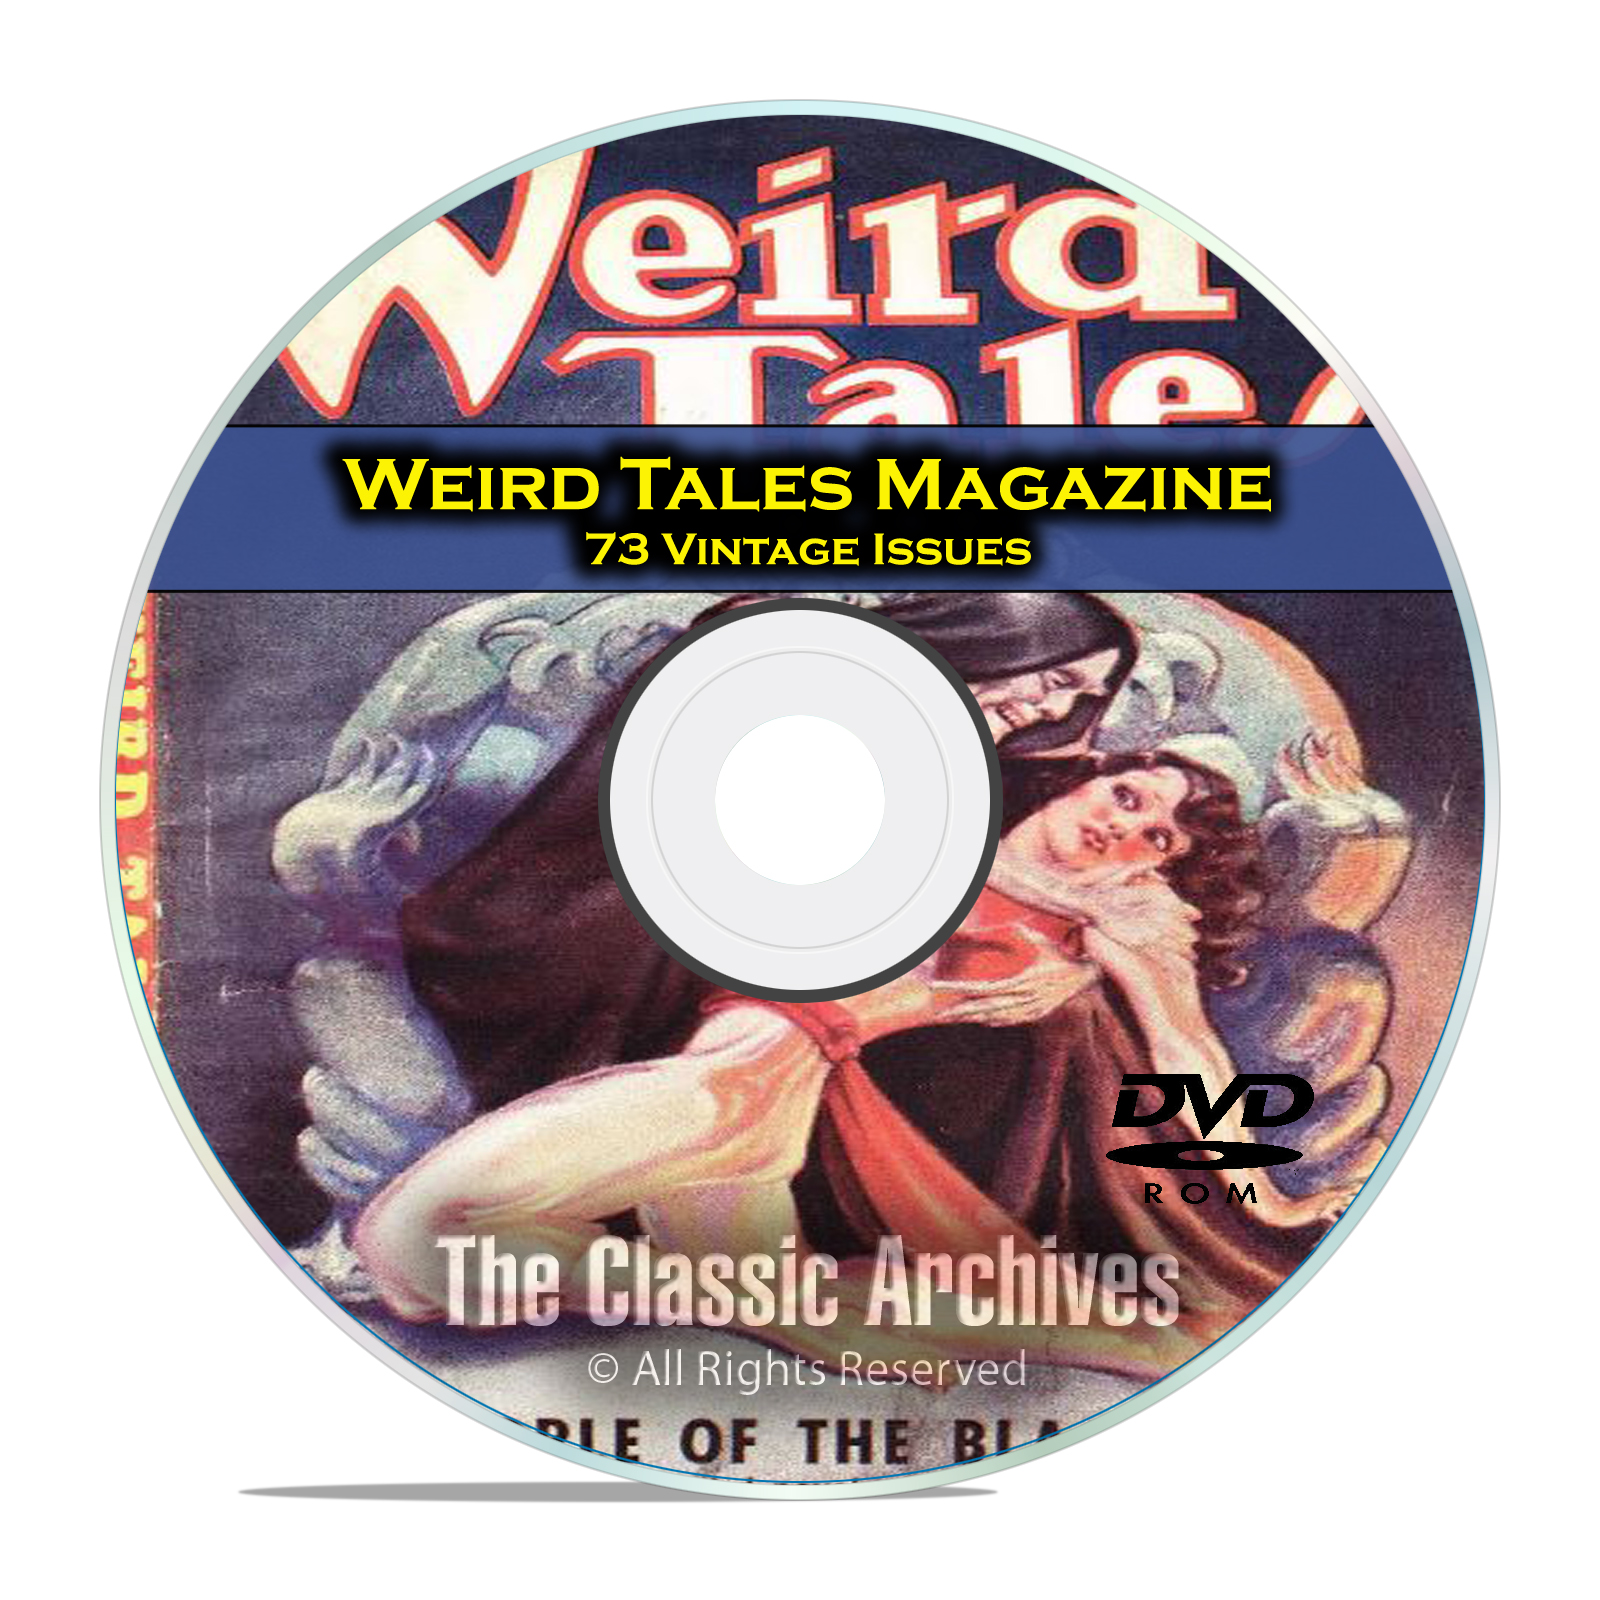 Weird Tales, 73 Vintage Pulp Magazine, Golden Age Science Fiction DVD